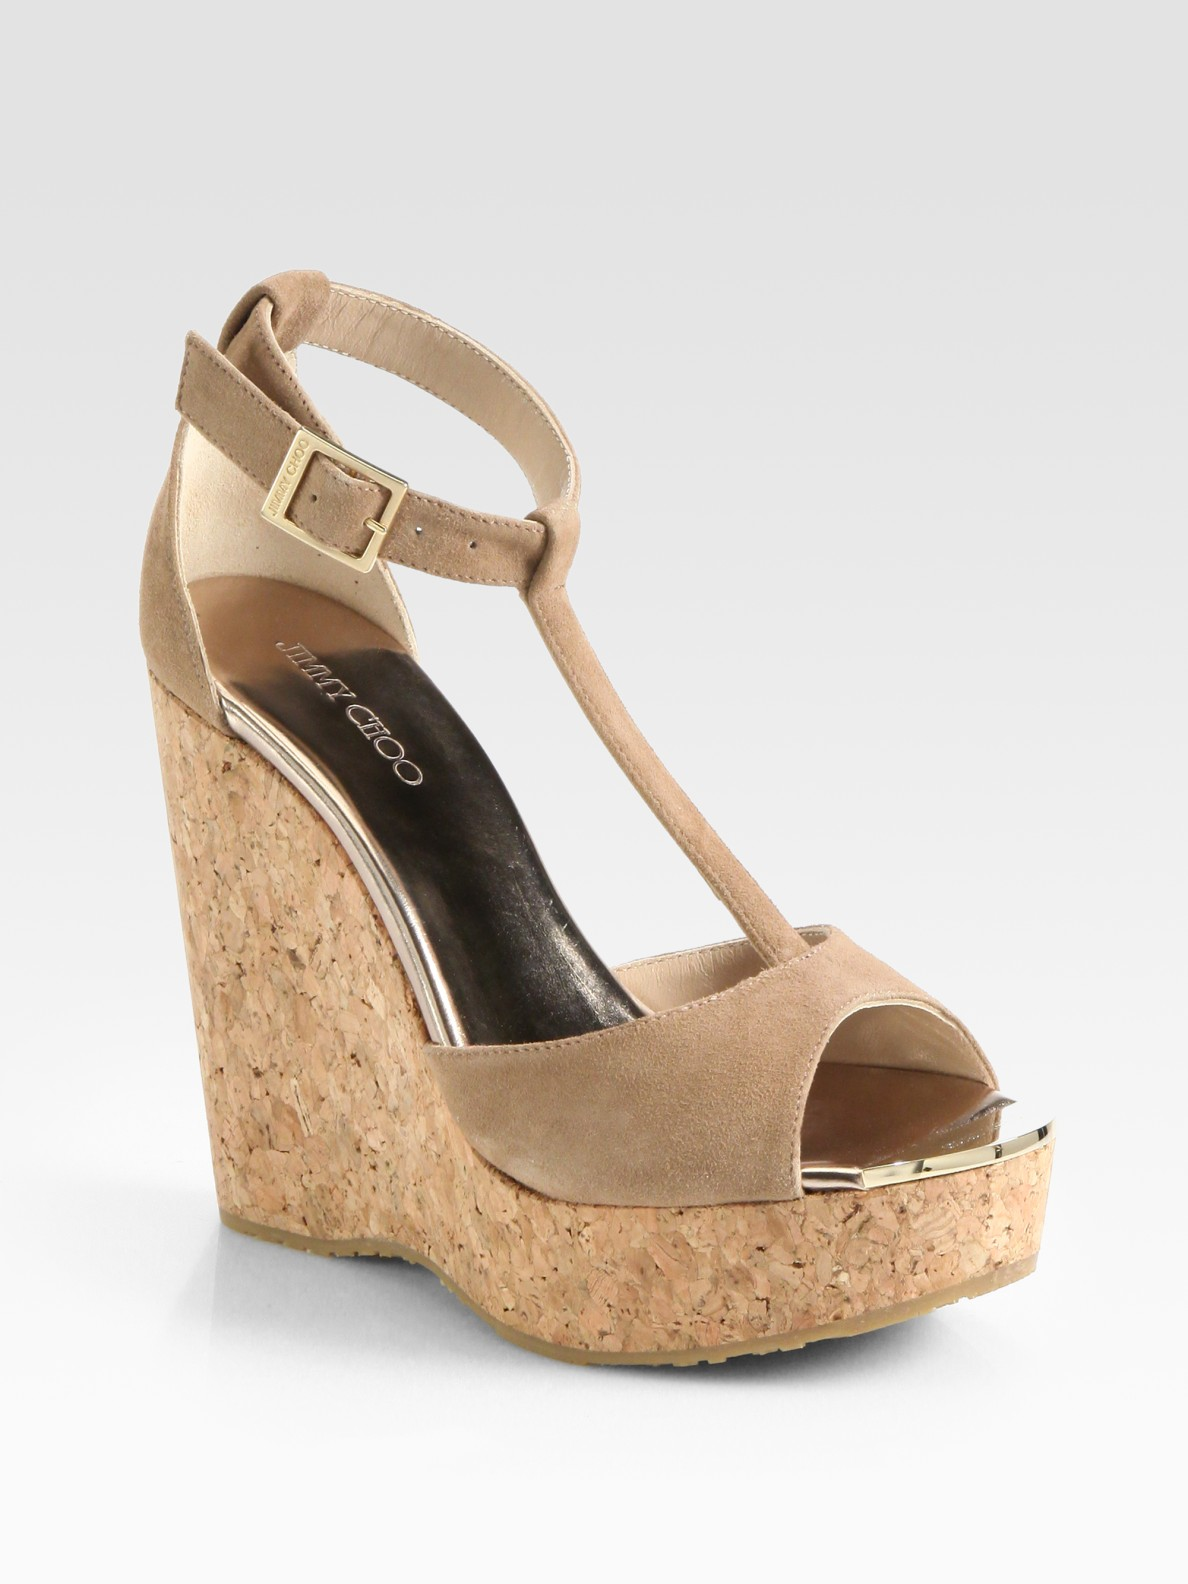 Jimmy Choo Suede T-Strap Wedges sale latest Cheapest cheap online sale get to buy qNQDPWE